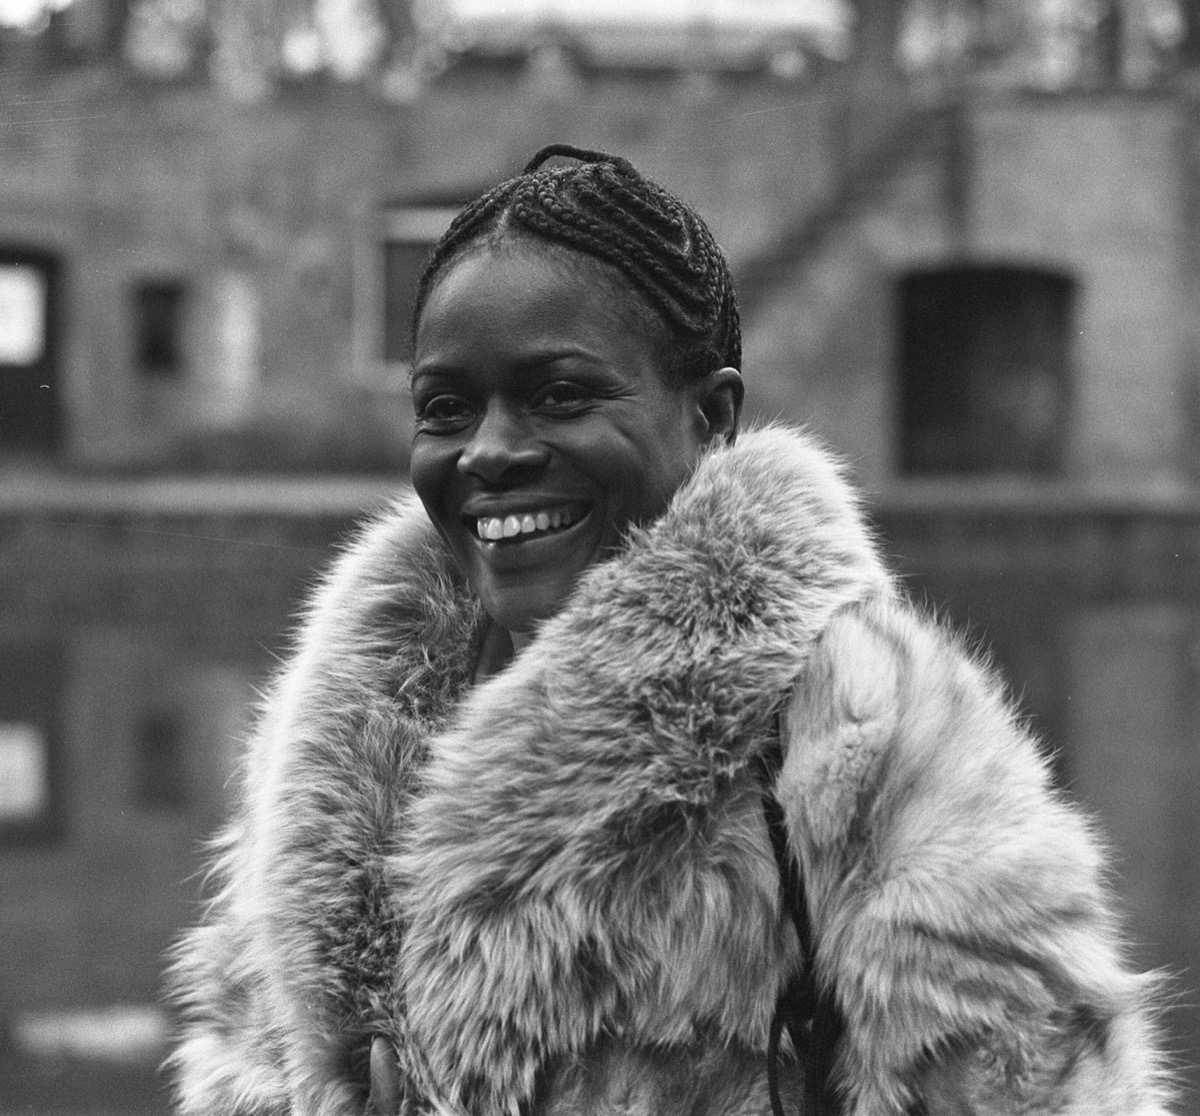 cicely tyson in fur coat and cornrows